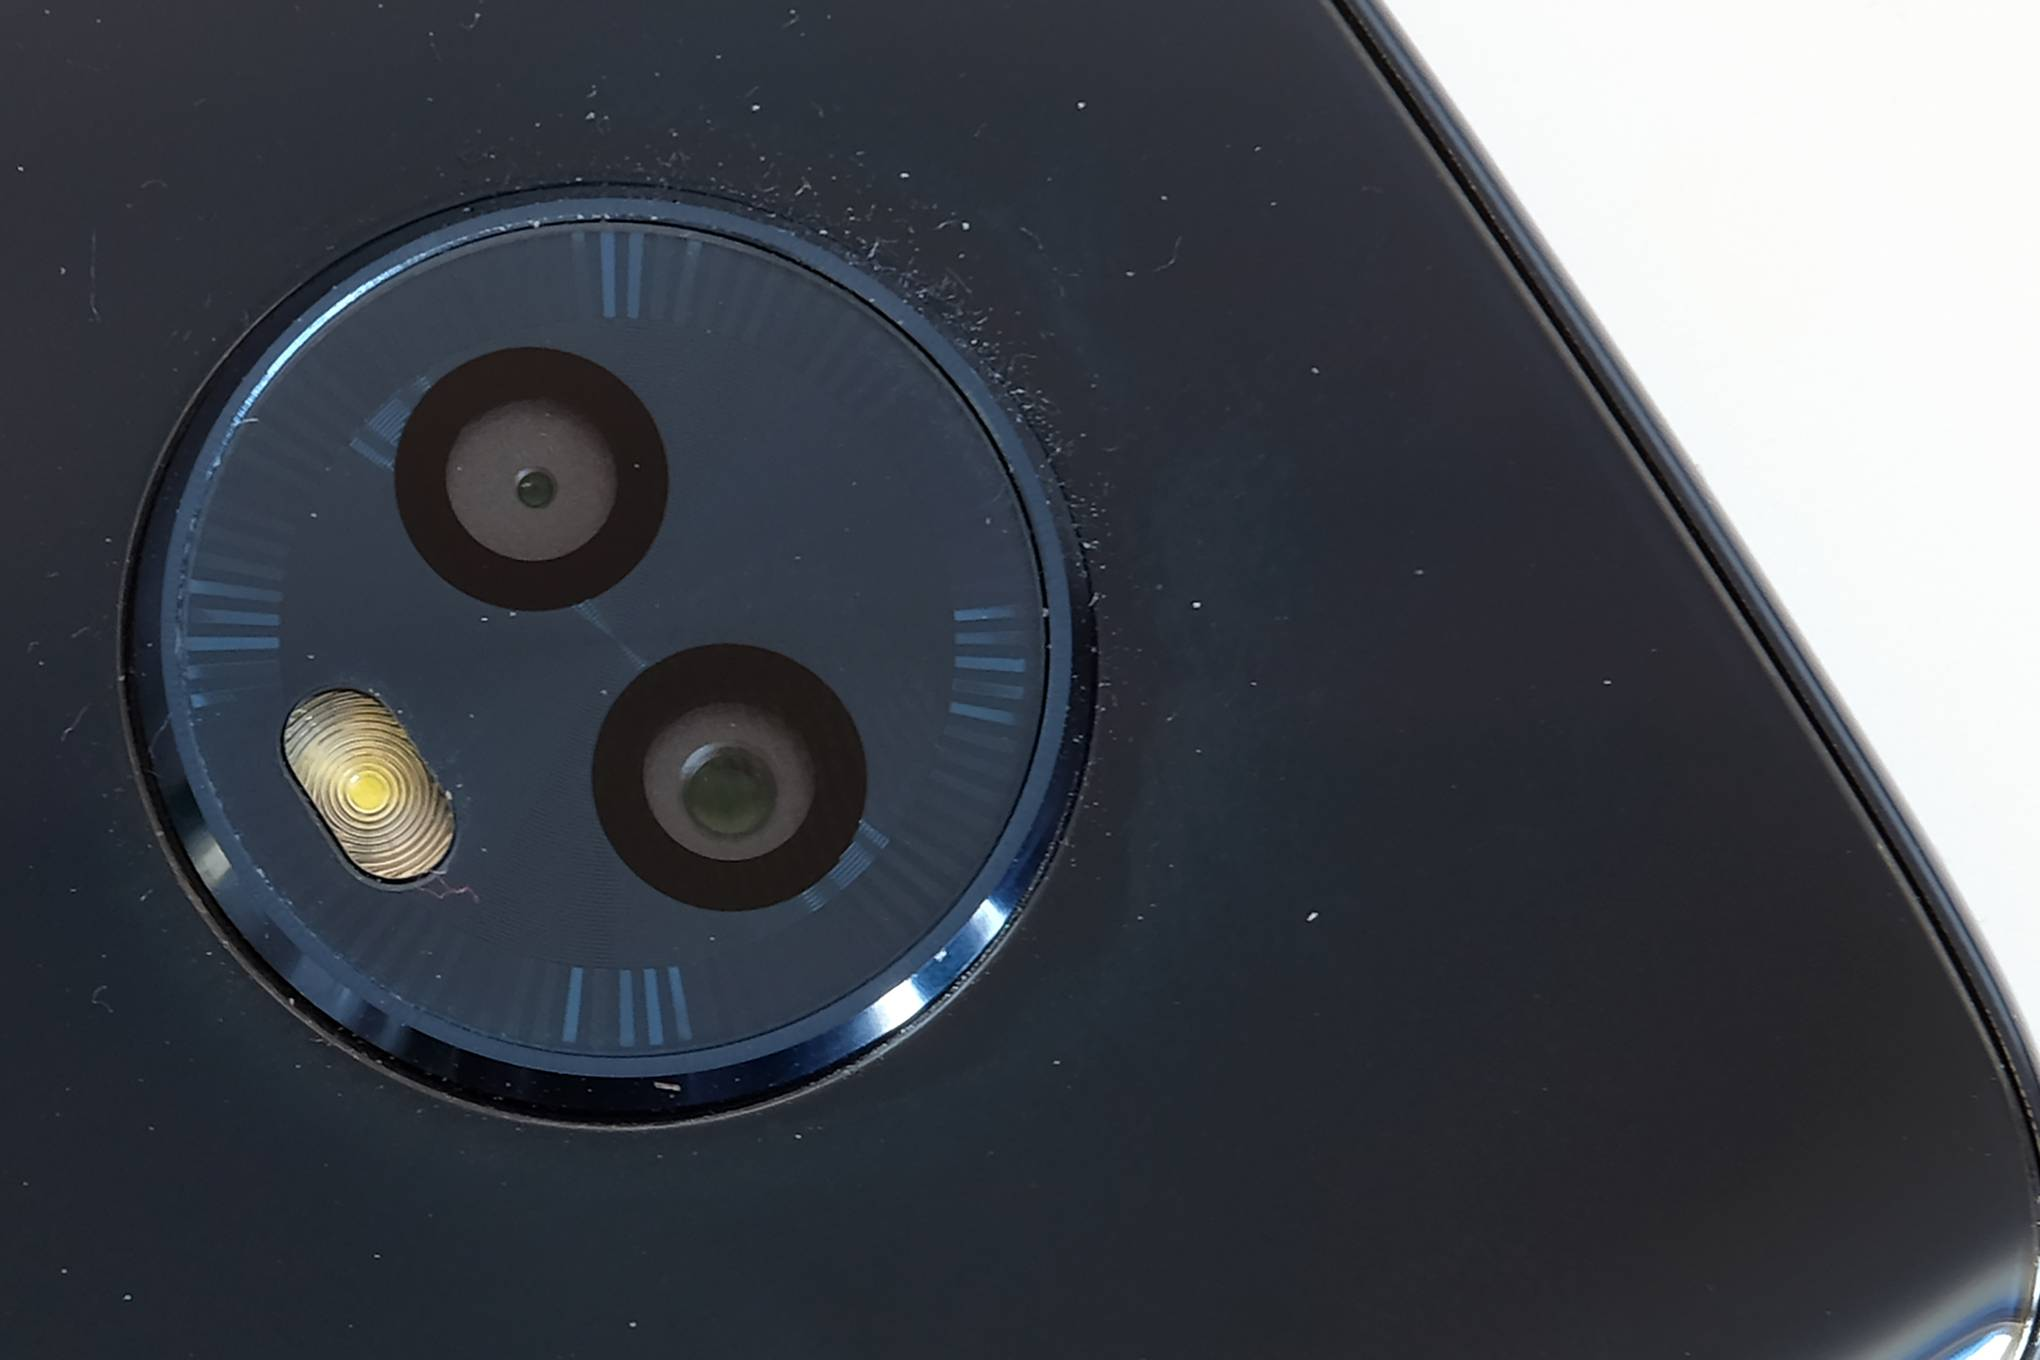 The Moto G6 exposes the identity crisis plaguing Android's top-end